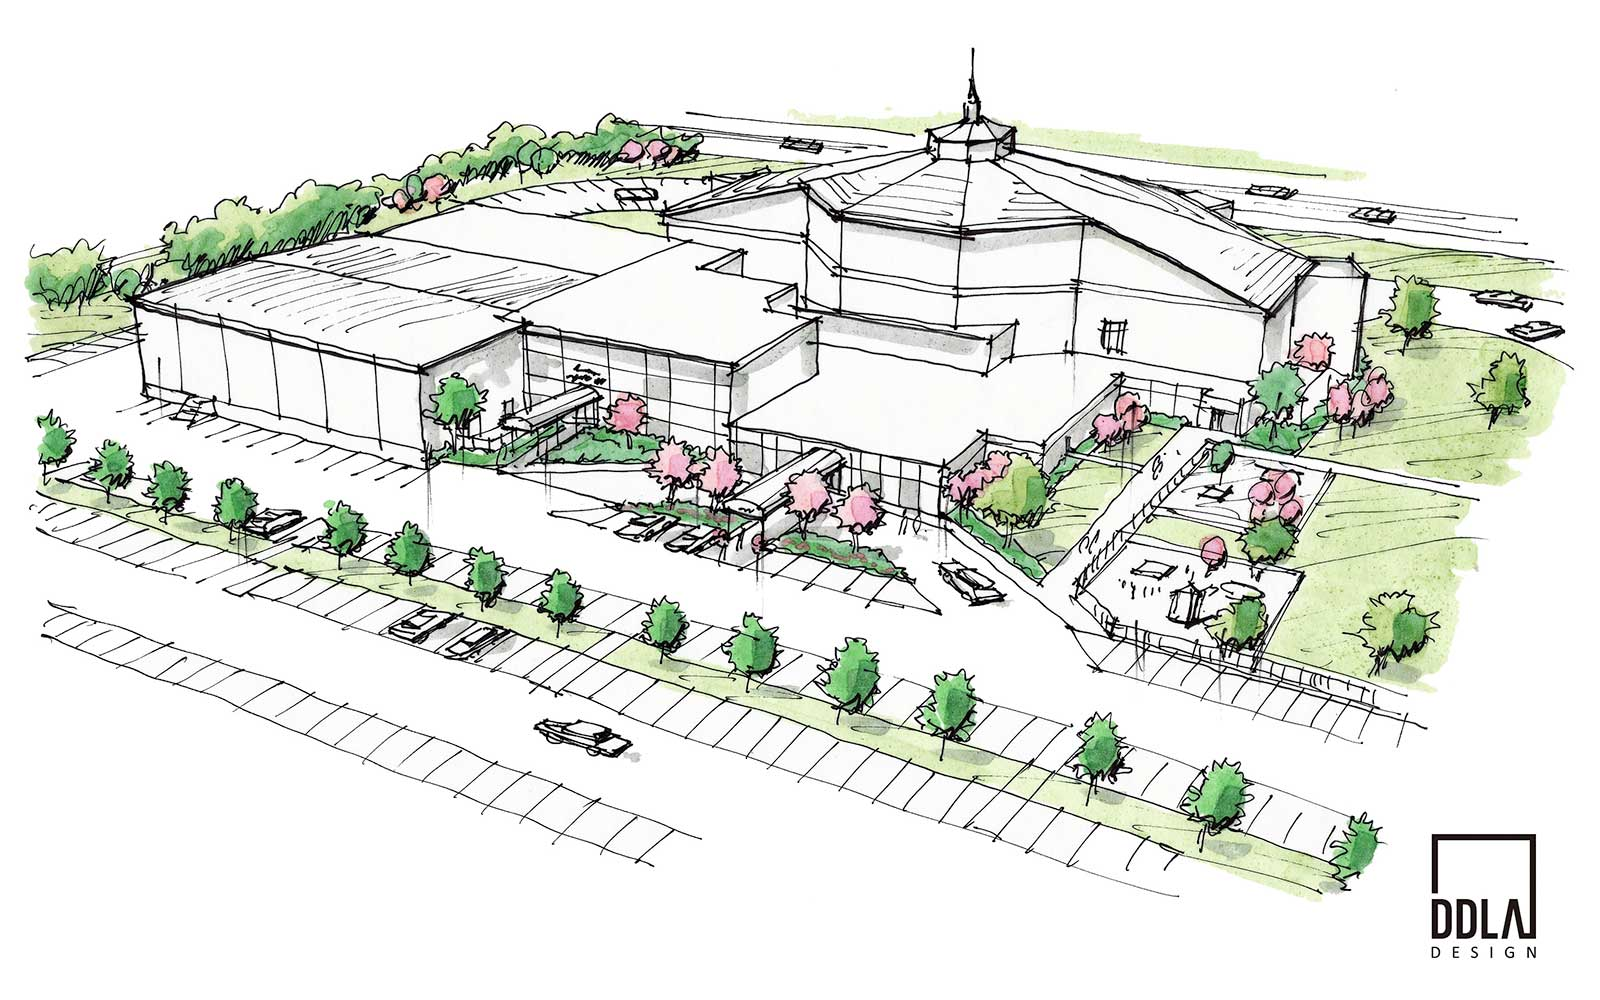 tulsa central church conceptual design